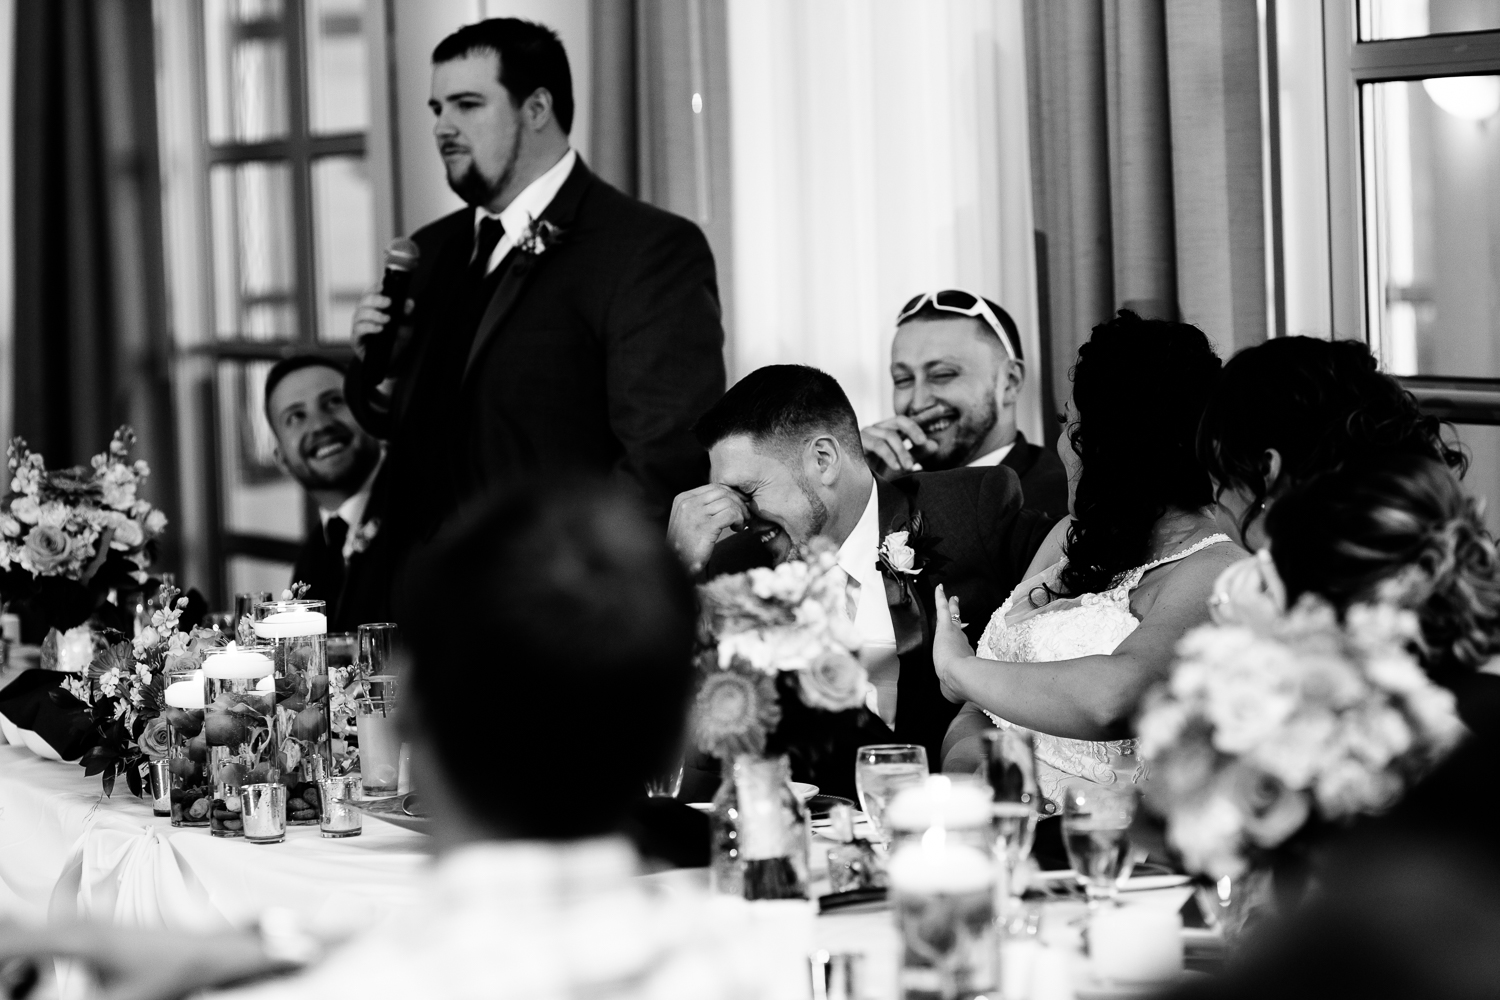 A black and white image of the groom laughing as a groomsman delievers a toast.